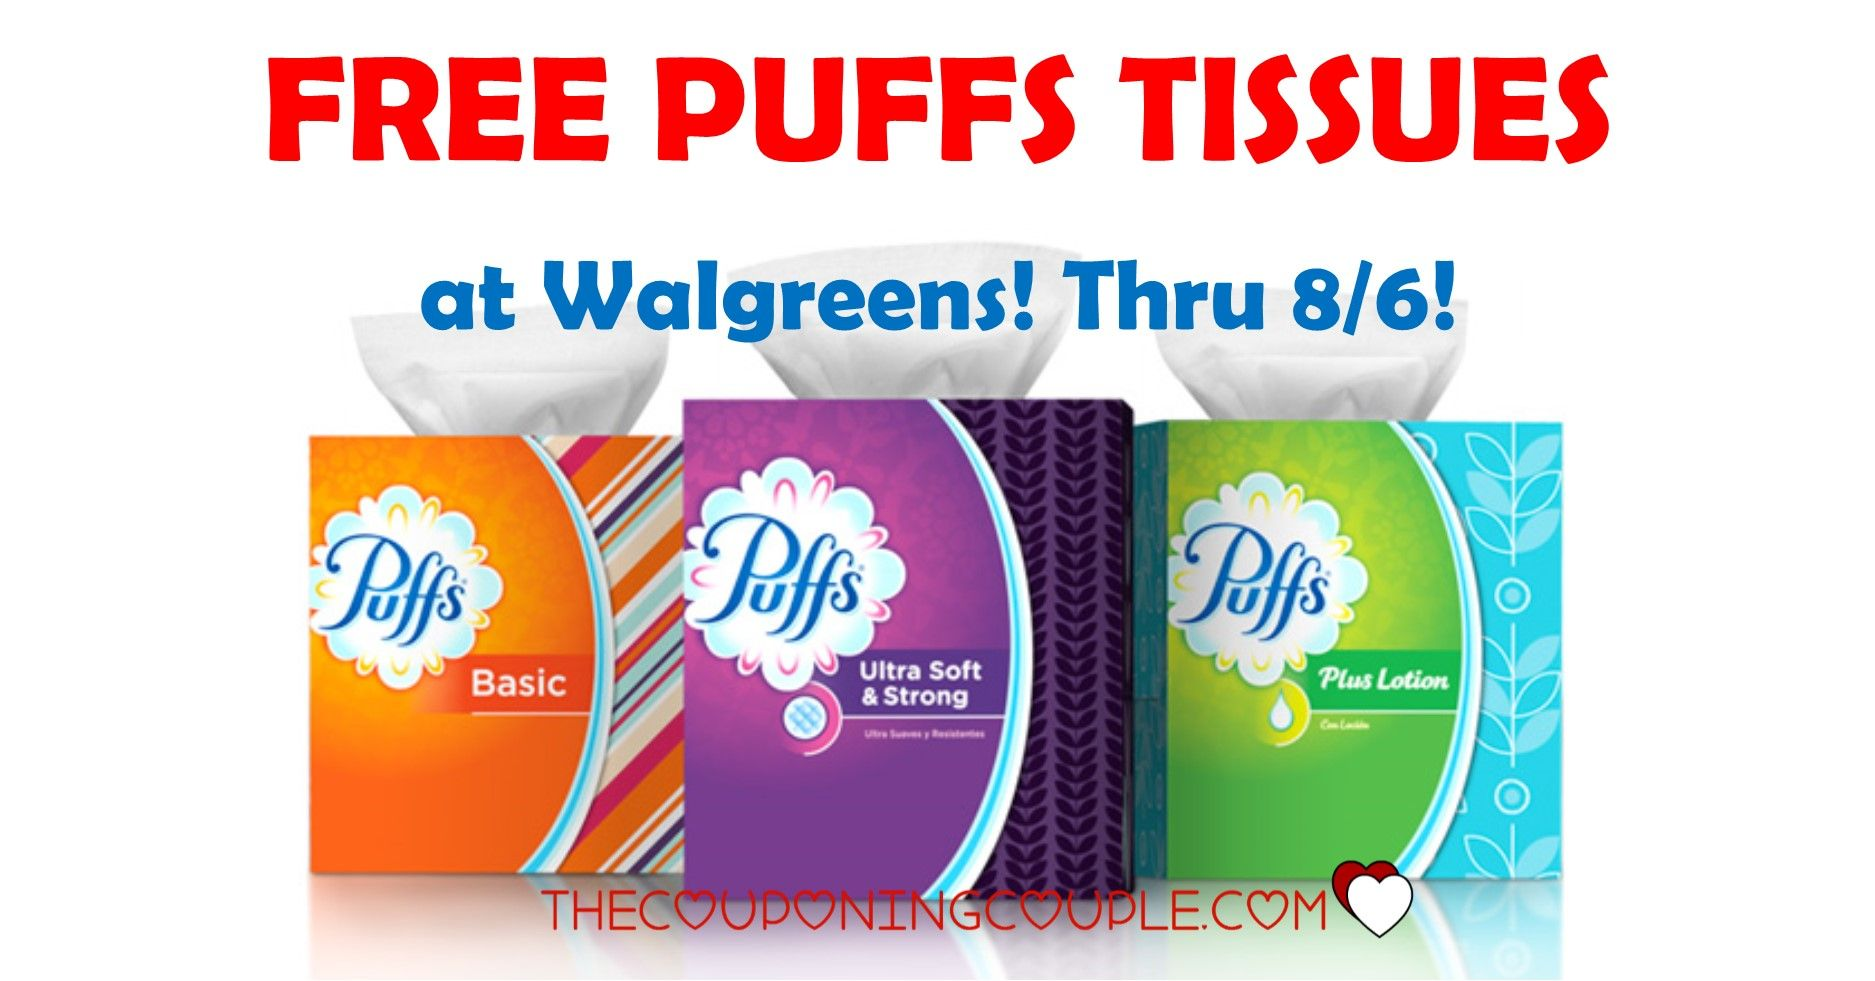 Puffs Facial Tissues Walgreens For 0 99 Puffs Tissue Printable Coupons Free Printable Coupons